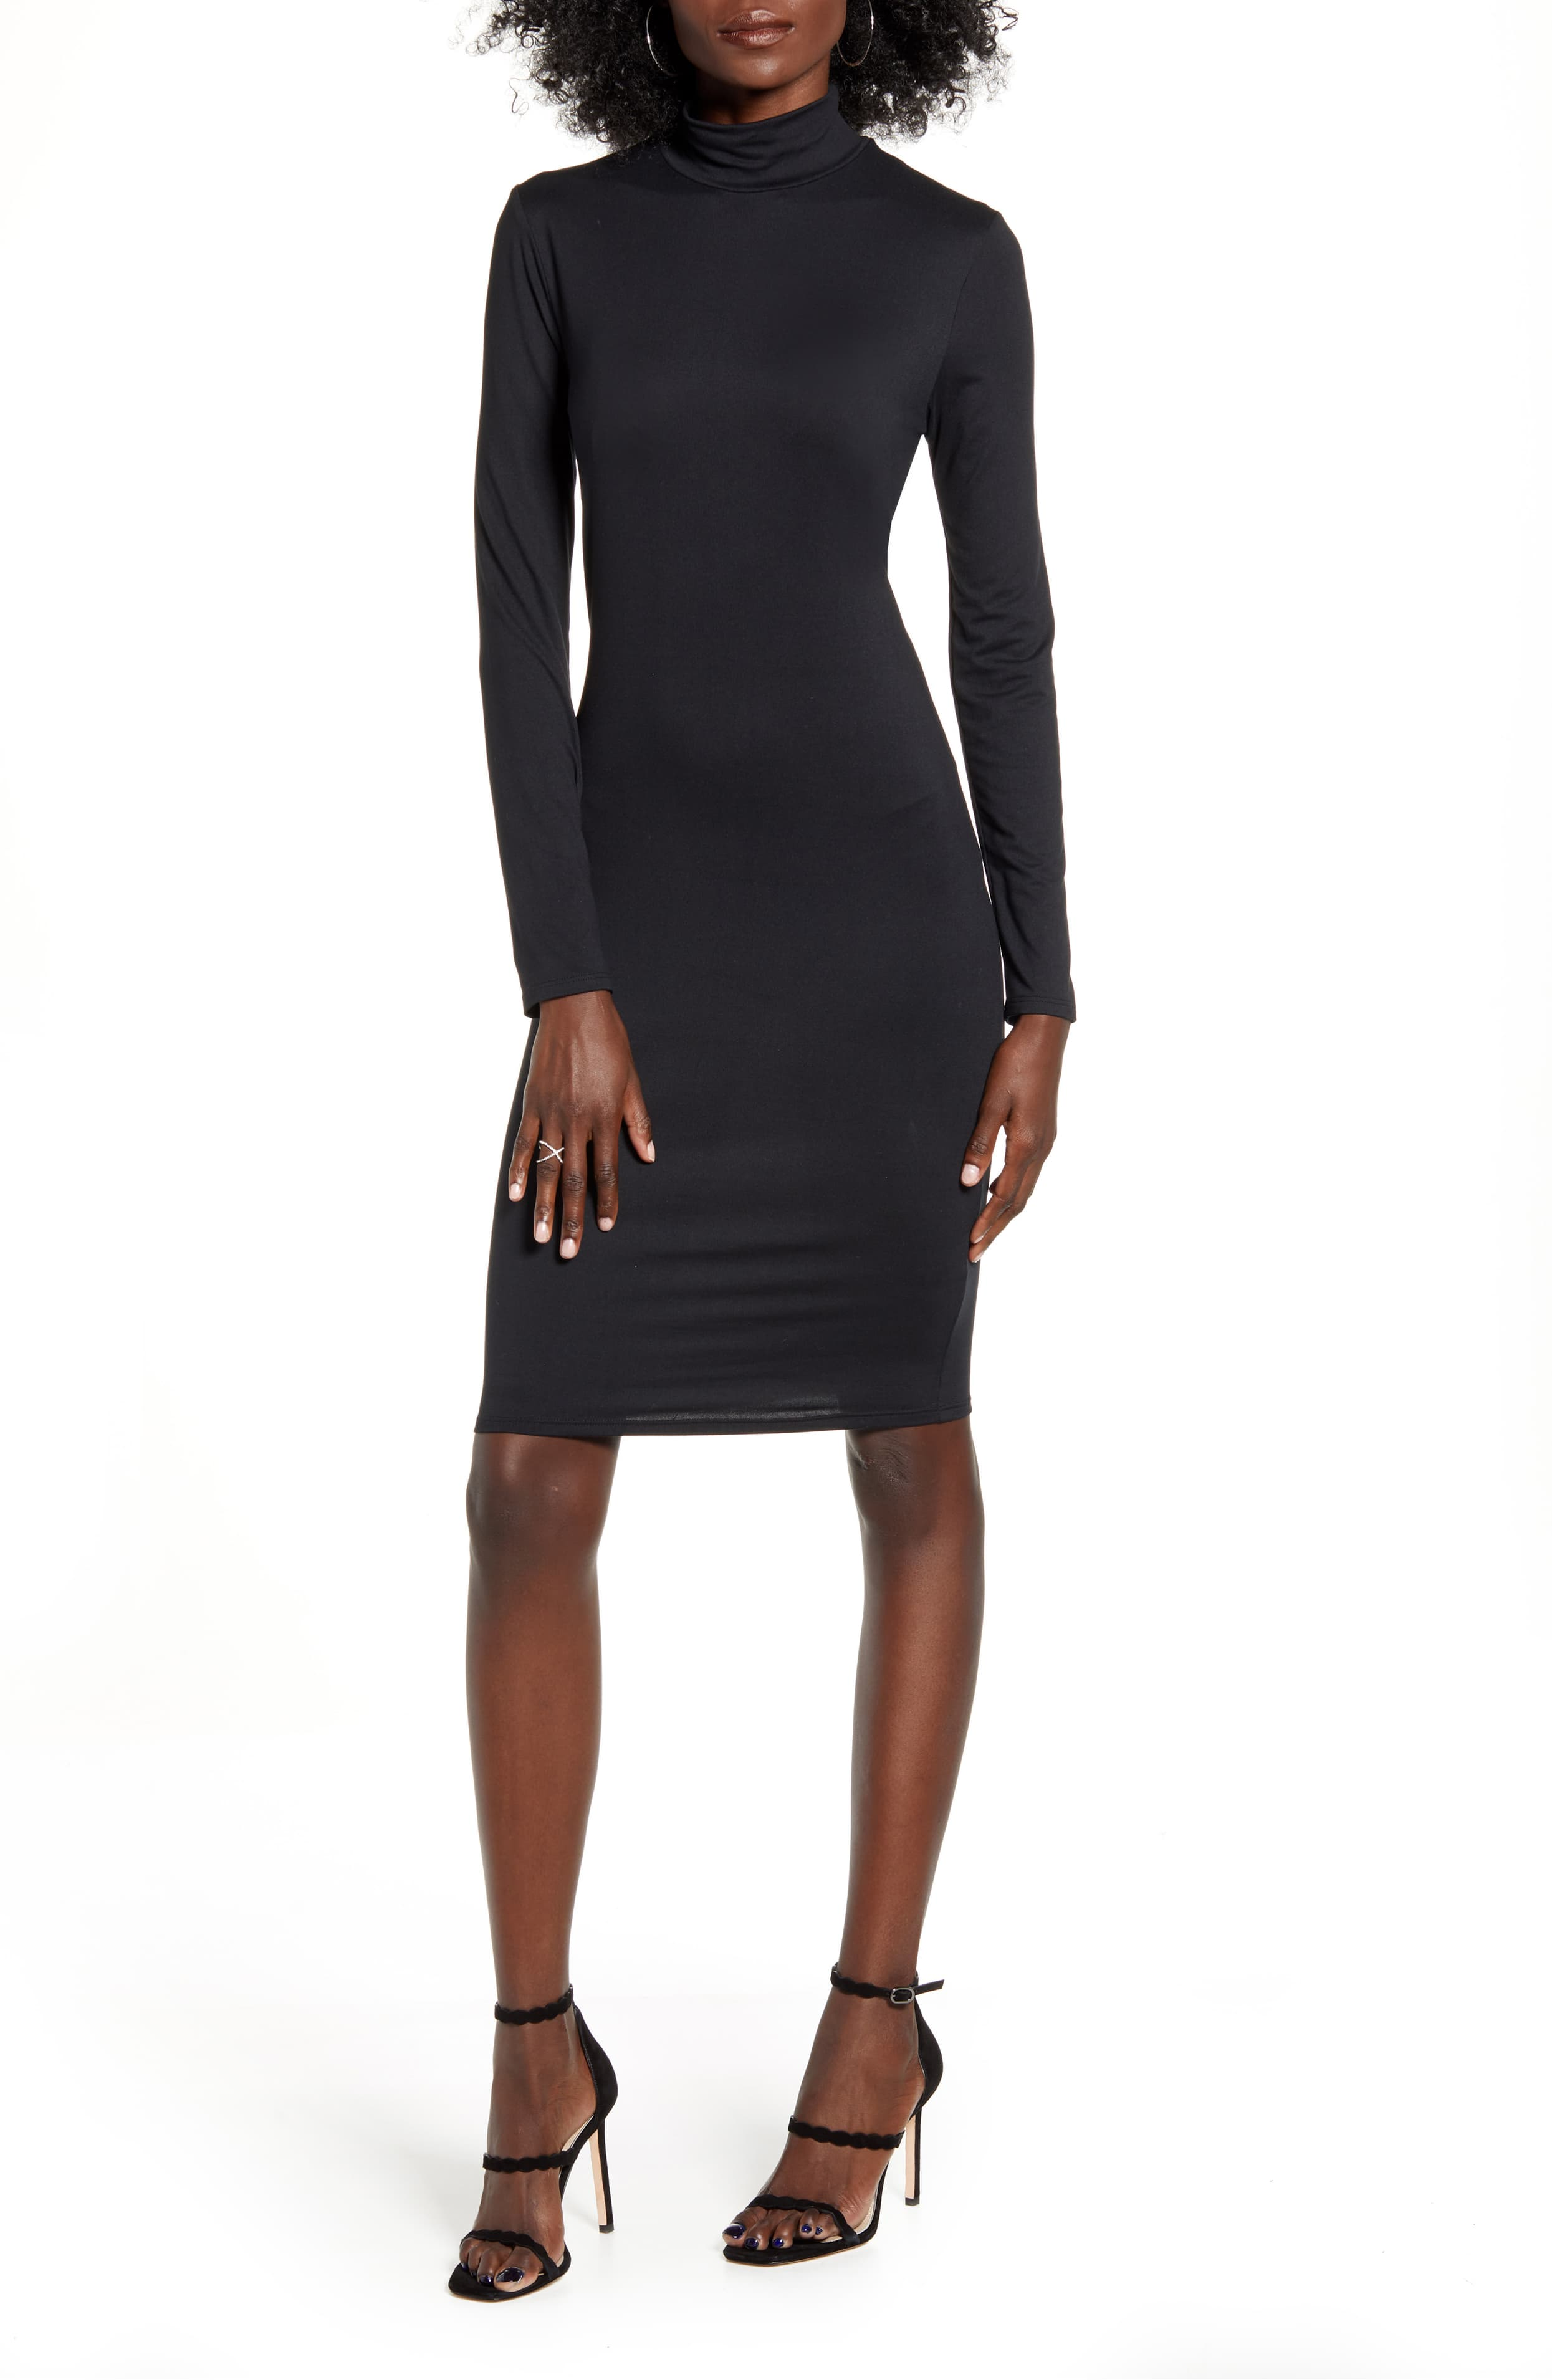 A body-skimming dress is cut to hug your curves and draw attention at every turn. $49Shop it(Image: Nordstrom)